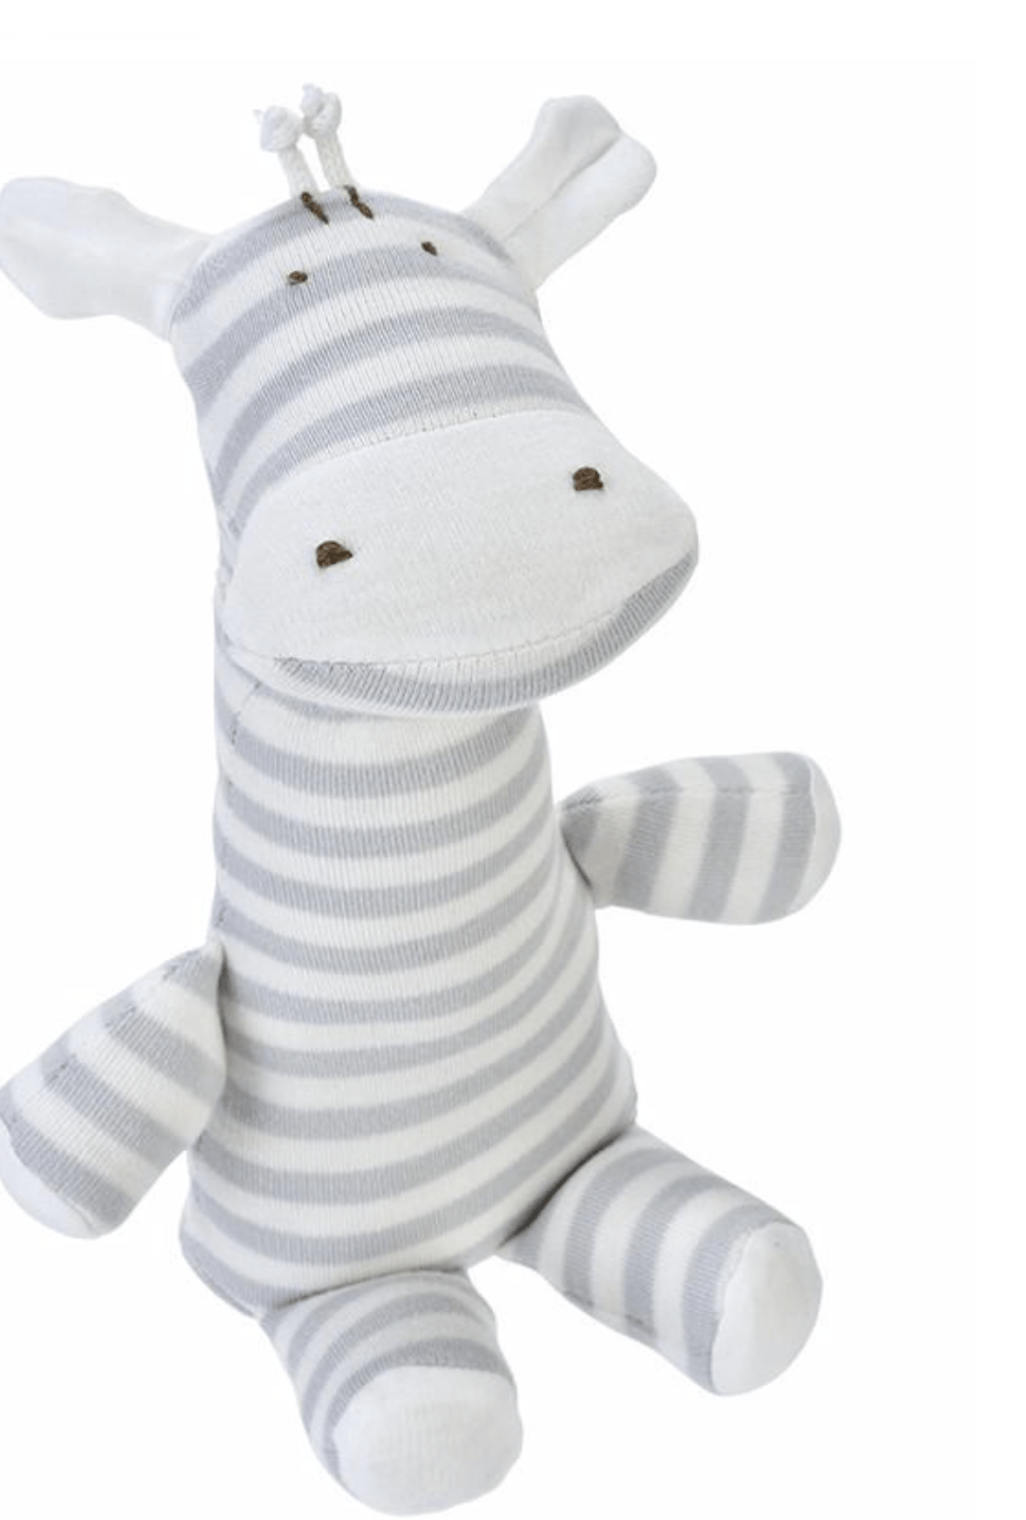 Giraffe Baby Toy Plush - Make Me Yours Toy Studio